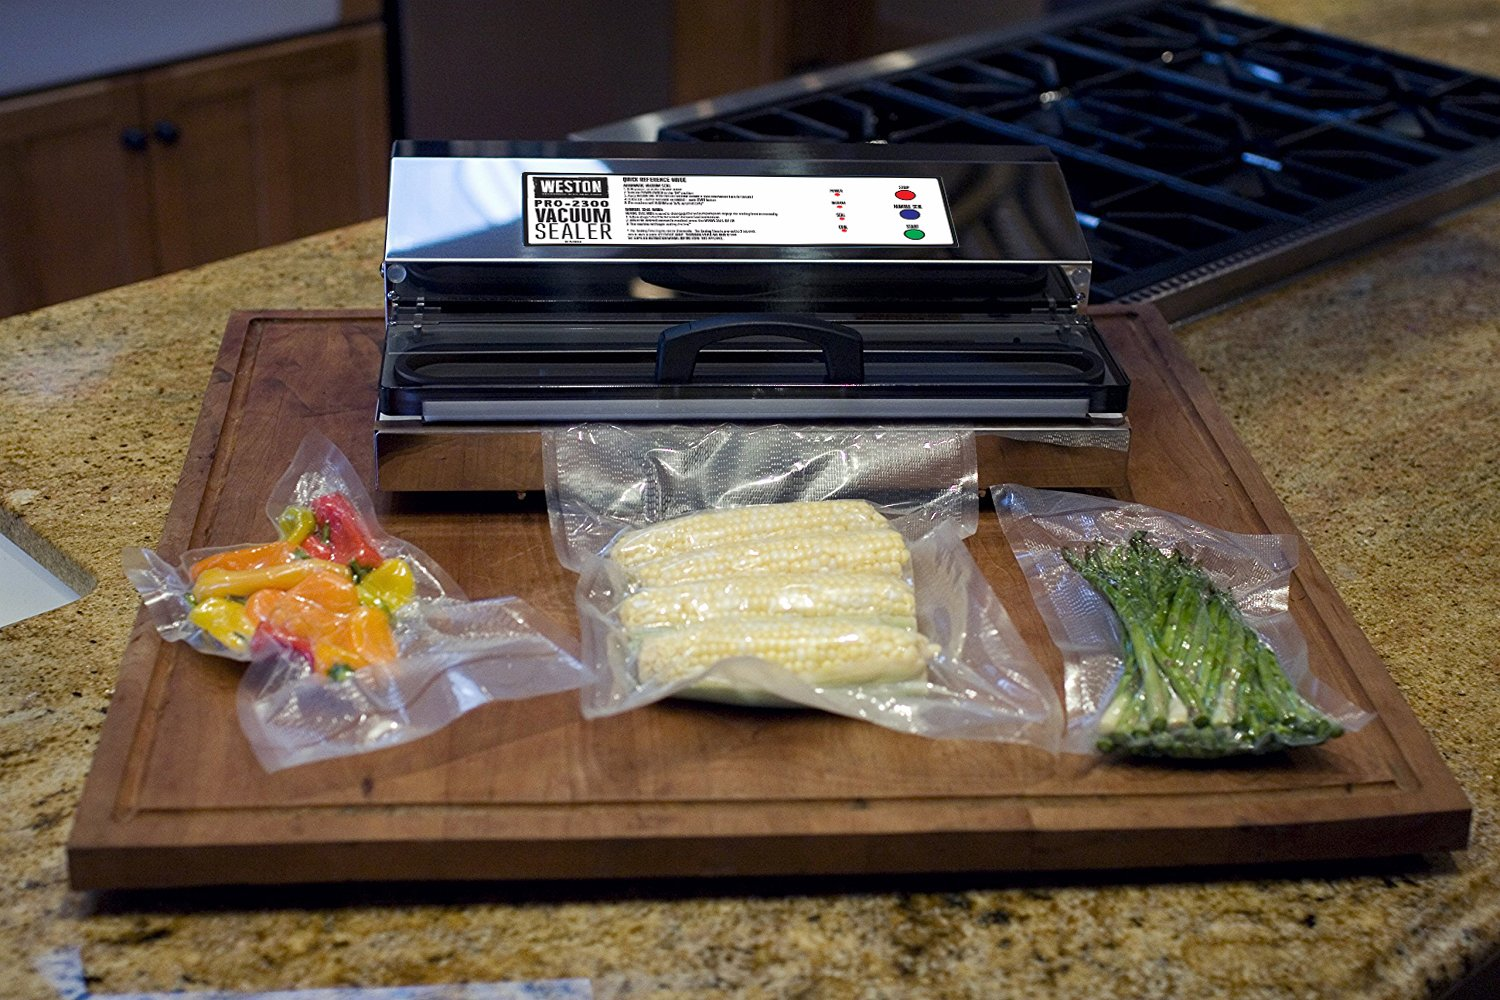 Weston Pro-2300 Commercial Grade Stainless Steel Vacuum Sealer (65-0201), Double Piston Pump by Weston (Image #6)